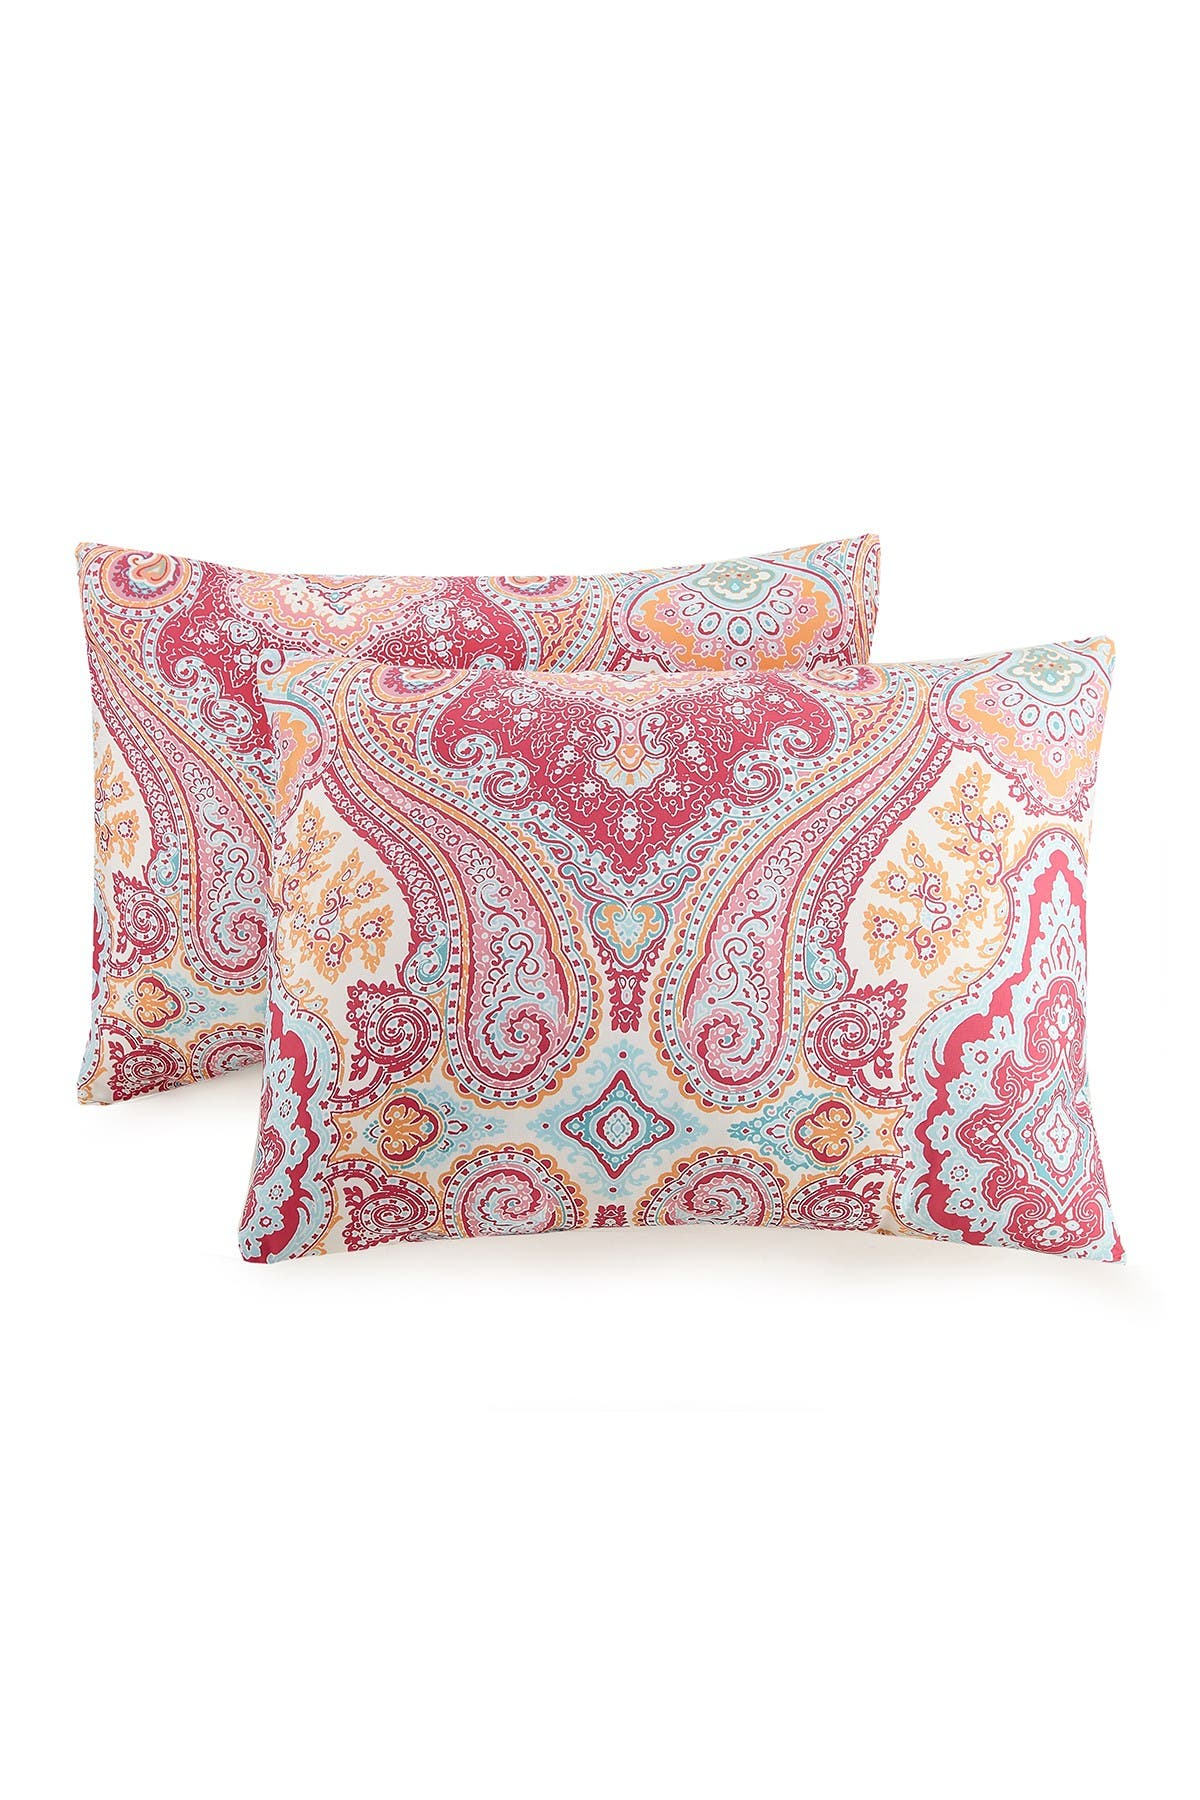 Image of Jessica Simpson Candes King Comforter 6-Piece Set